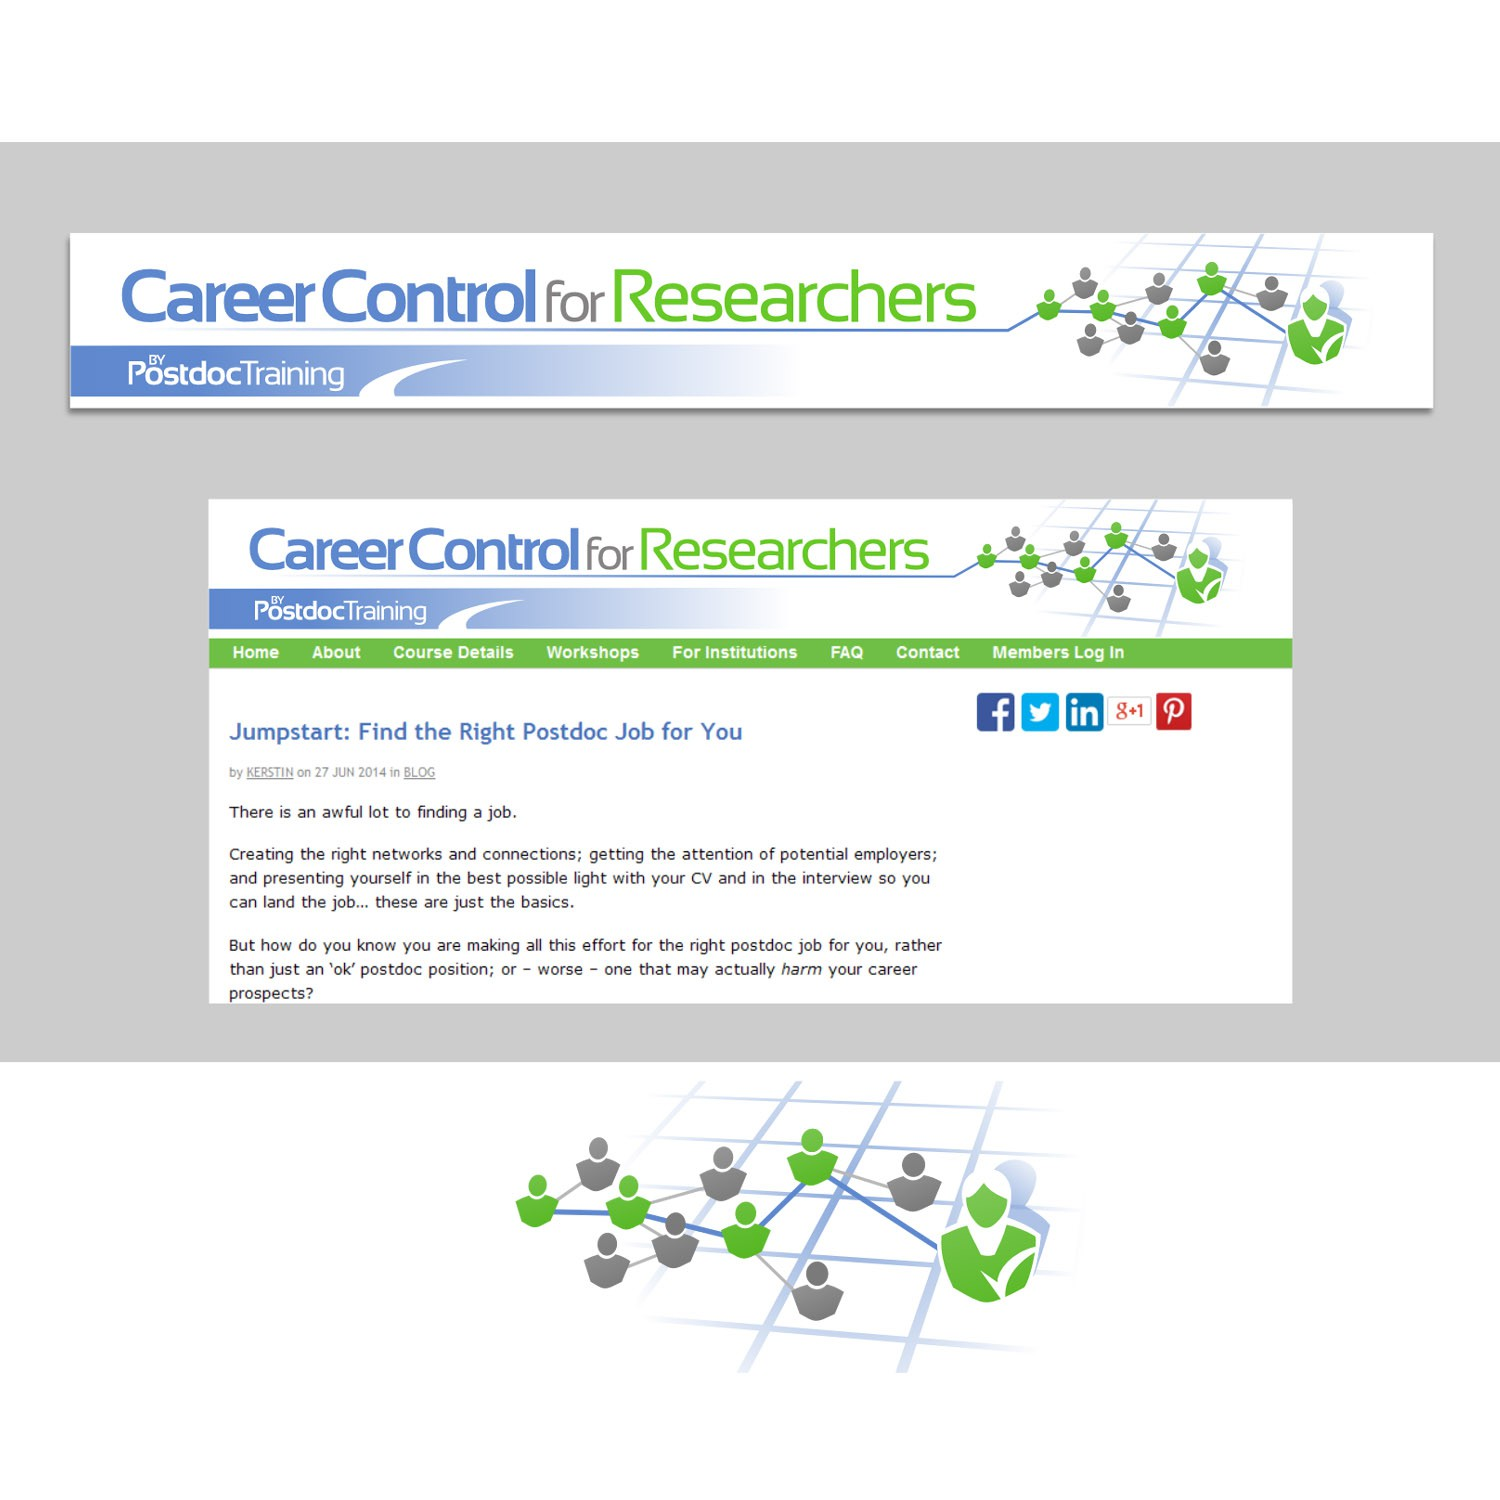 Please design a great website banner for our new training program, 'Career Control for Researchers'